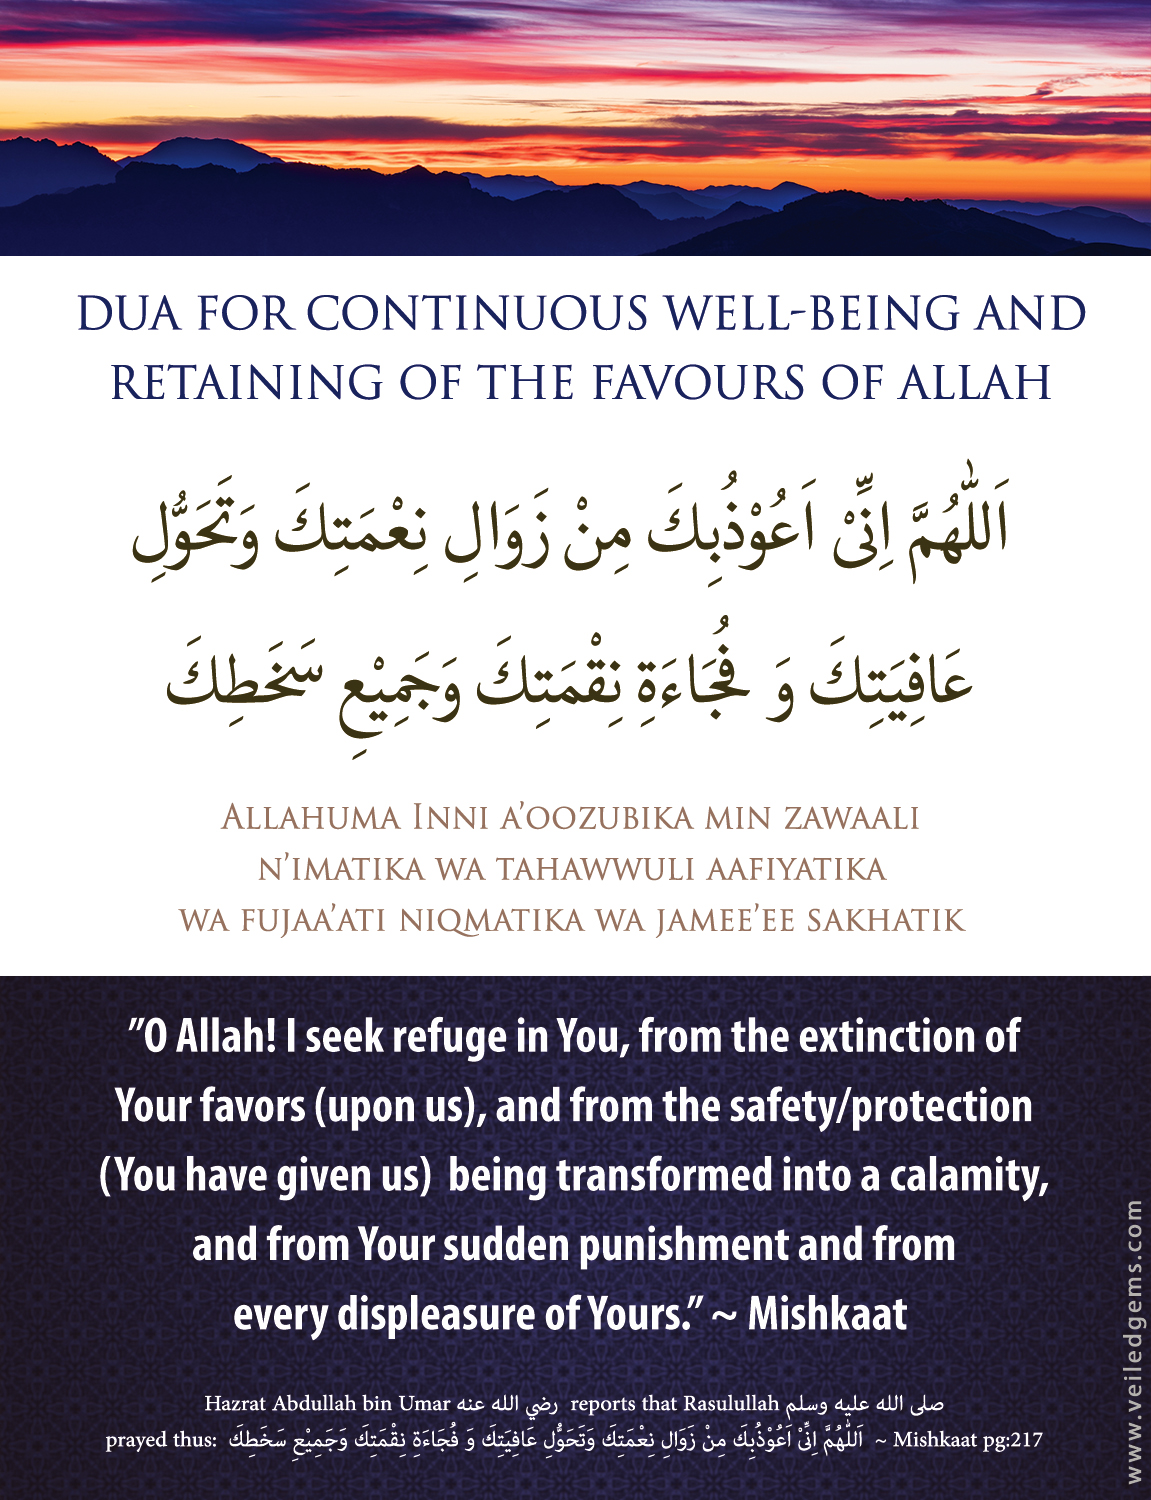 islaah.co.za.Dua.For.Continuous.Well.Being